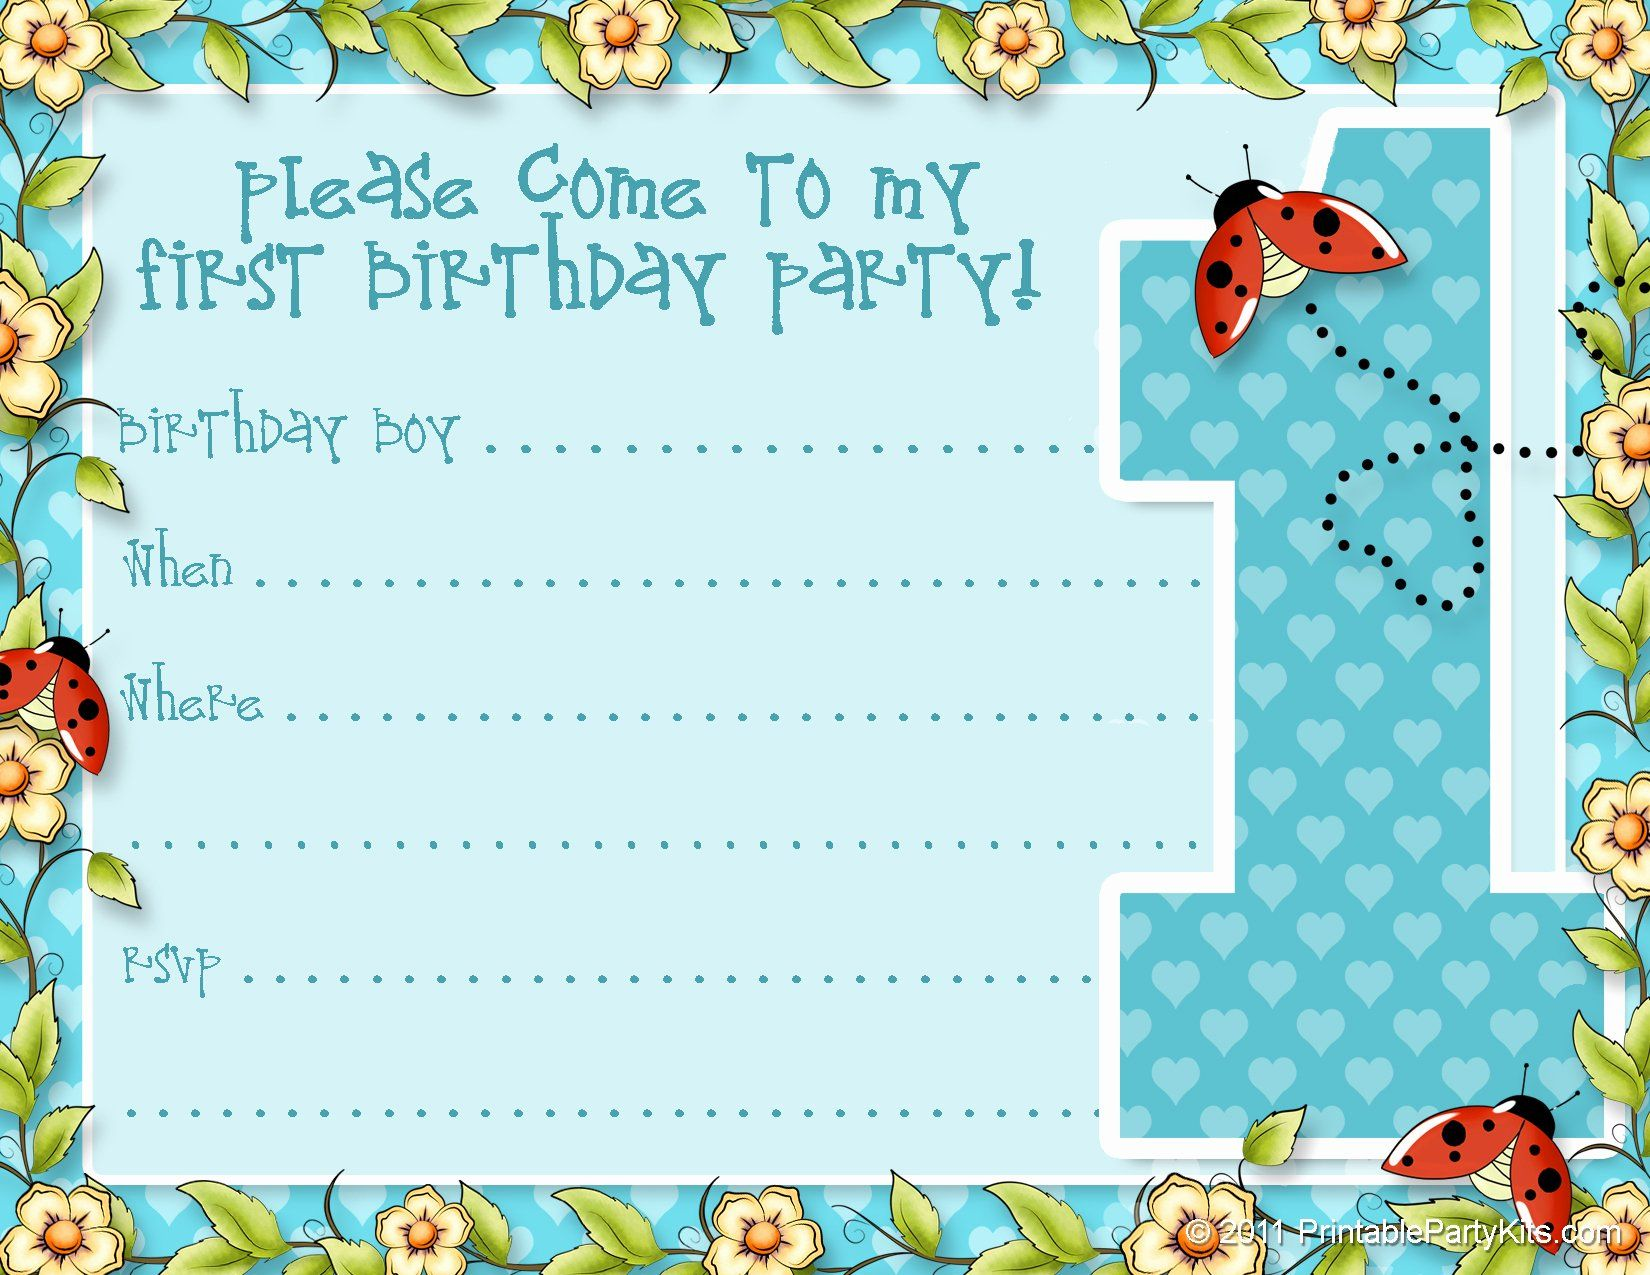 Kid Birthday Invitation Template New Printable 1st Birthday Party Announceme Boy Birthday Party Invitations Boy Birthday Invitations First Birthday Invitations